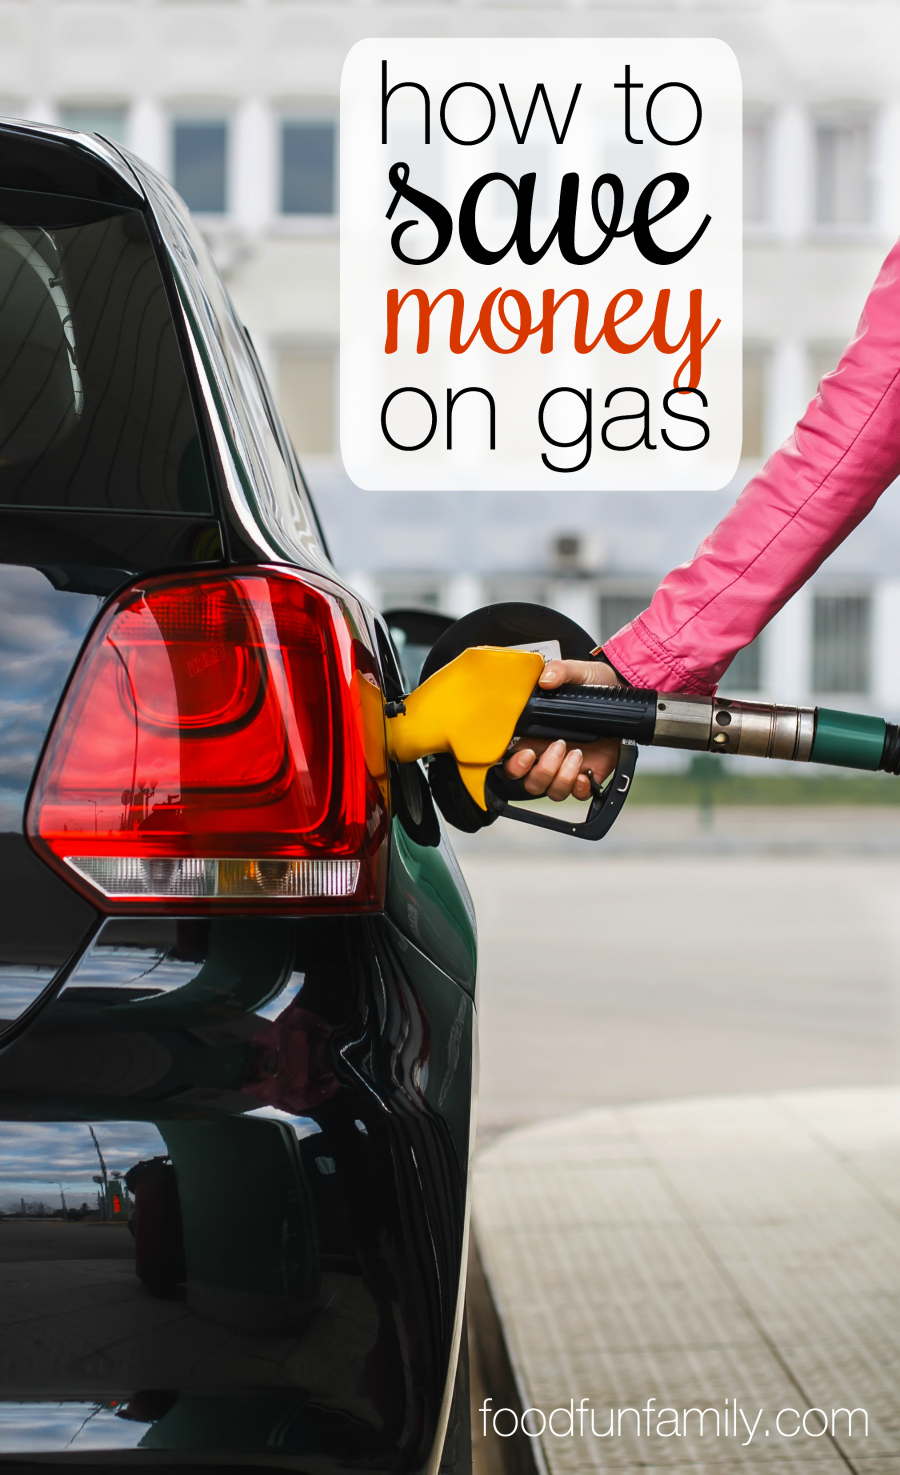 Tired of spending SO MUCH MONEY to fill up the gas tank? Check out these simple tips  to save money on gas and pay less at the pump (the last tip is my absolute favorite!).